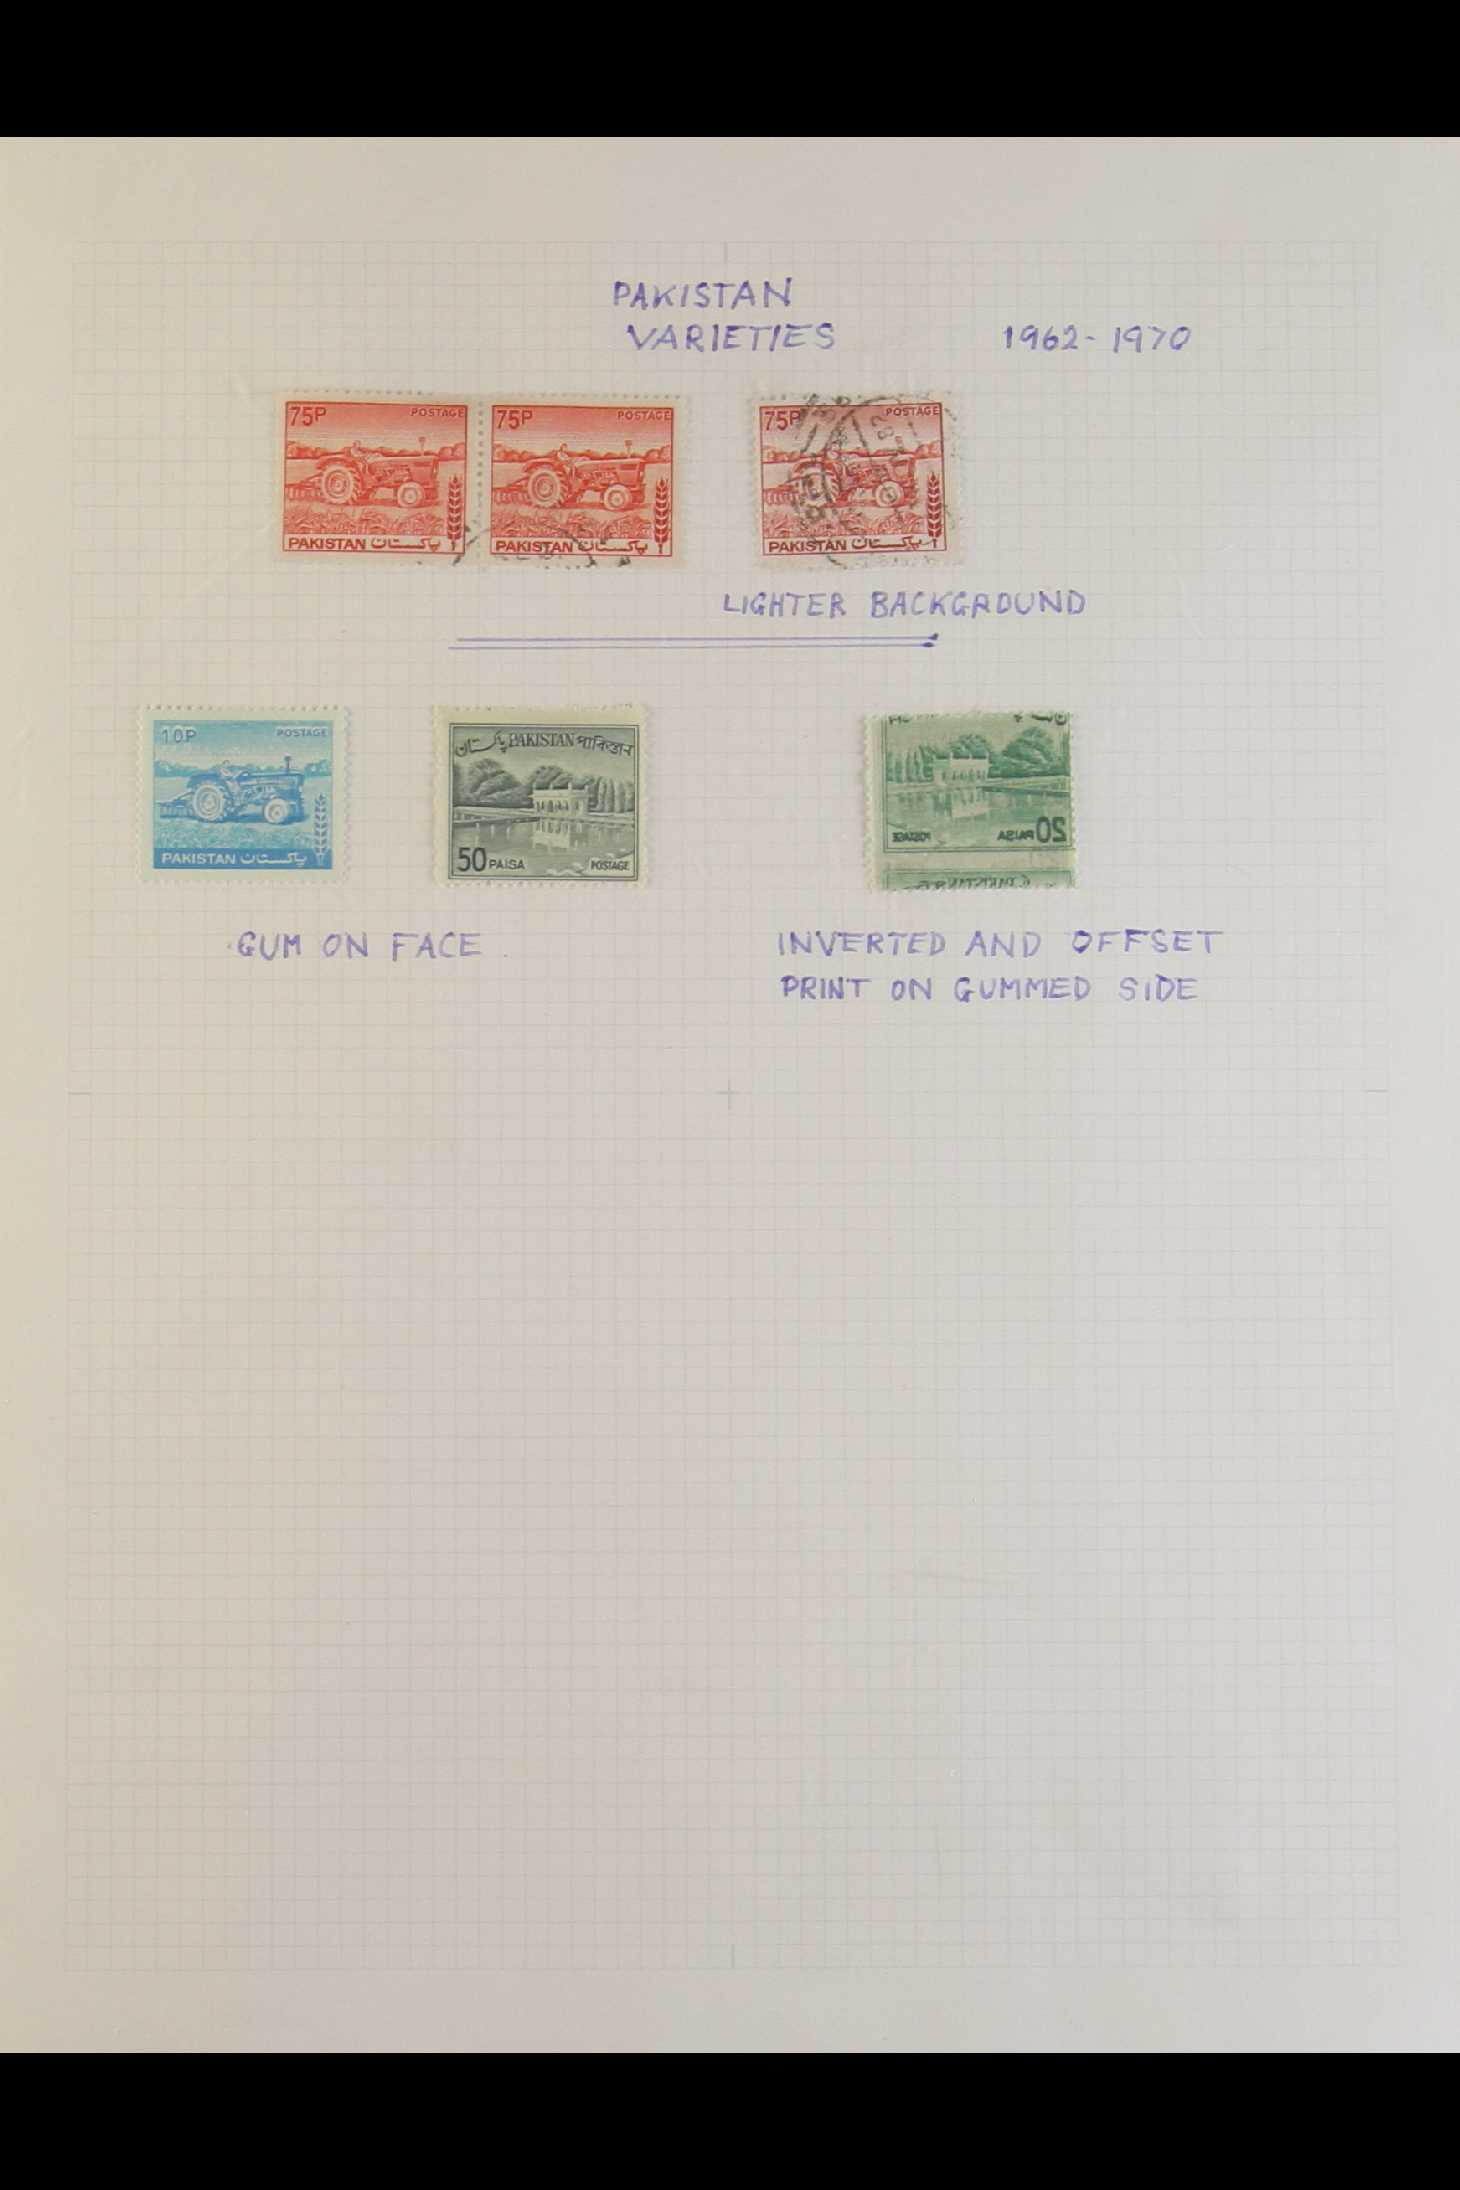 PAKISTAN 1960-2000 VARIETIES COLLECTION mint or nhm incl. 1960 Revolution Day 2a pink OMITTED, - Image 5 of 9